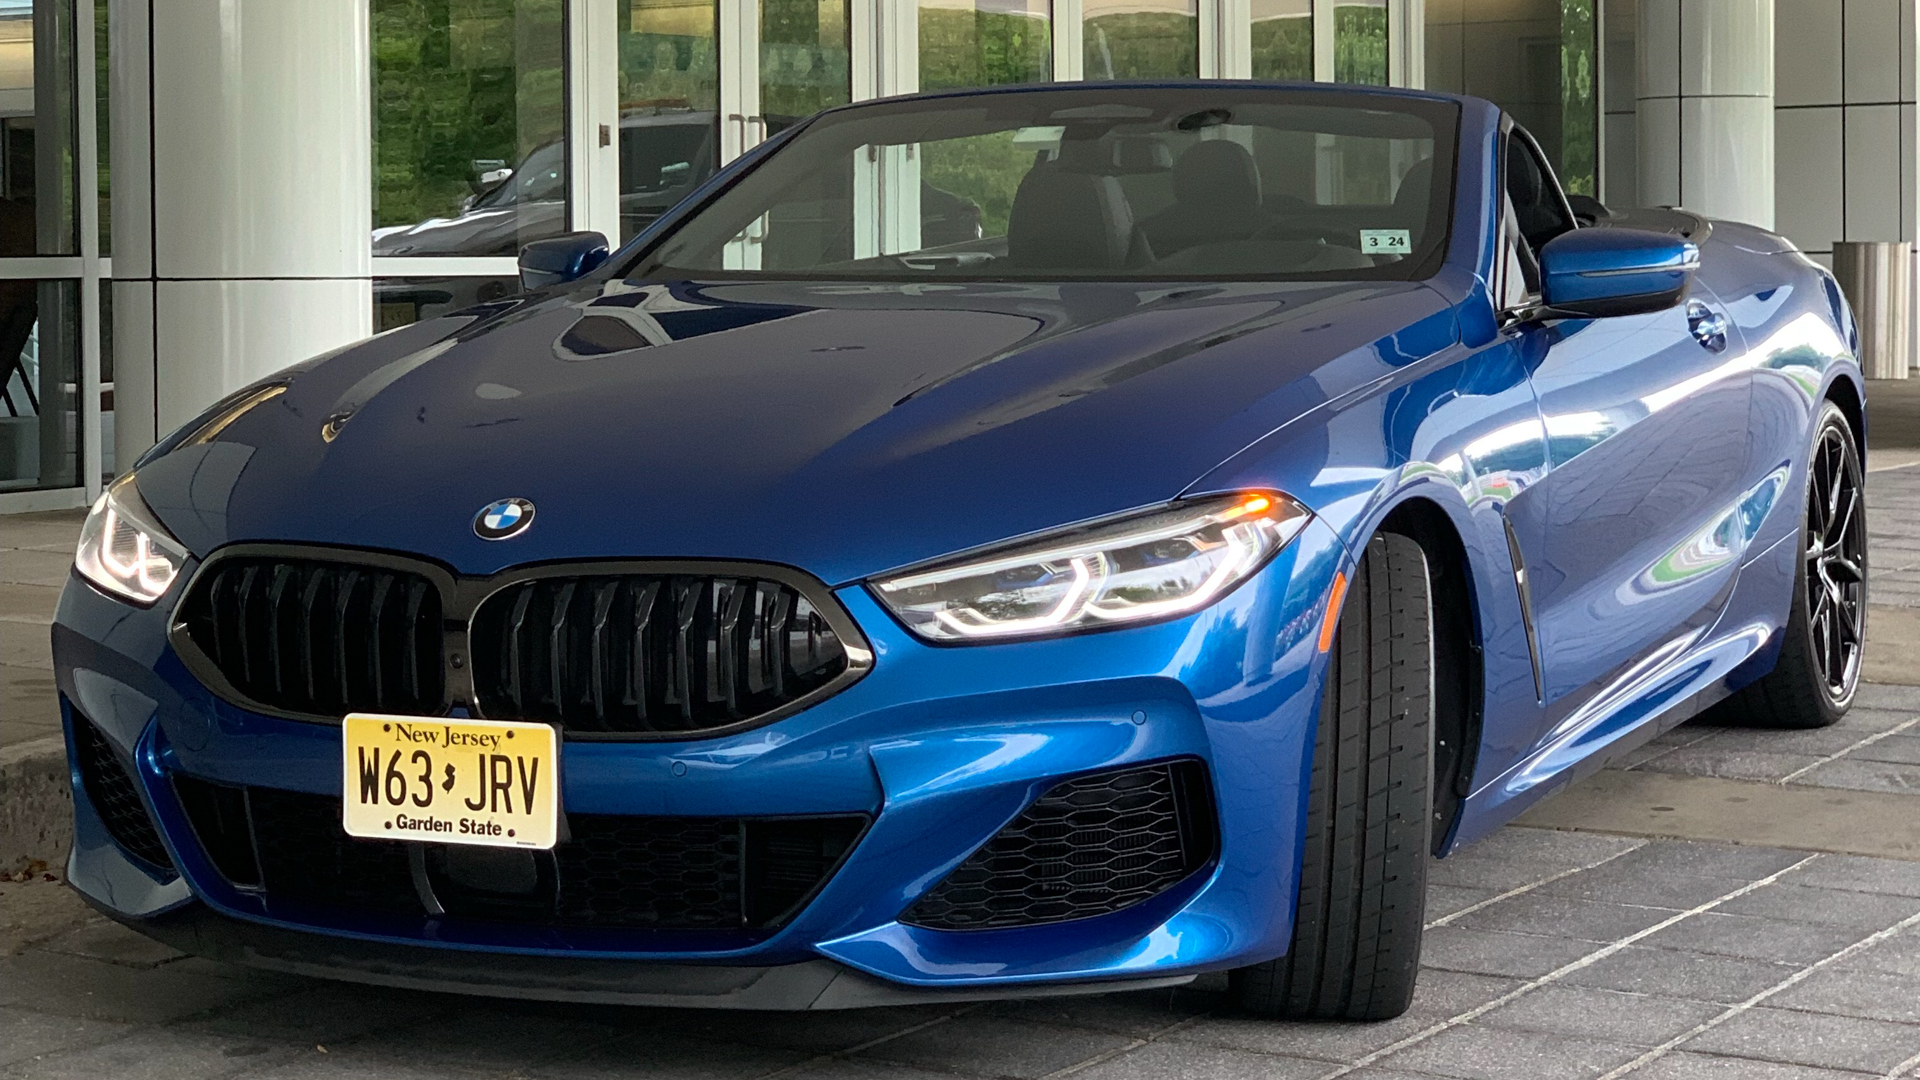 BMW M850i Convertible 1 of 1